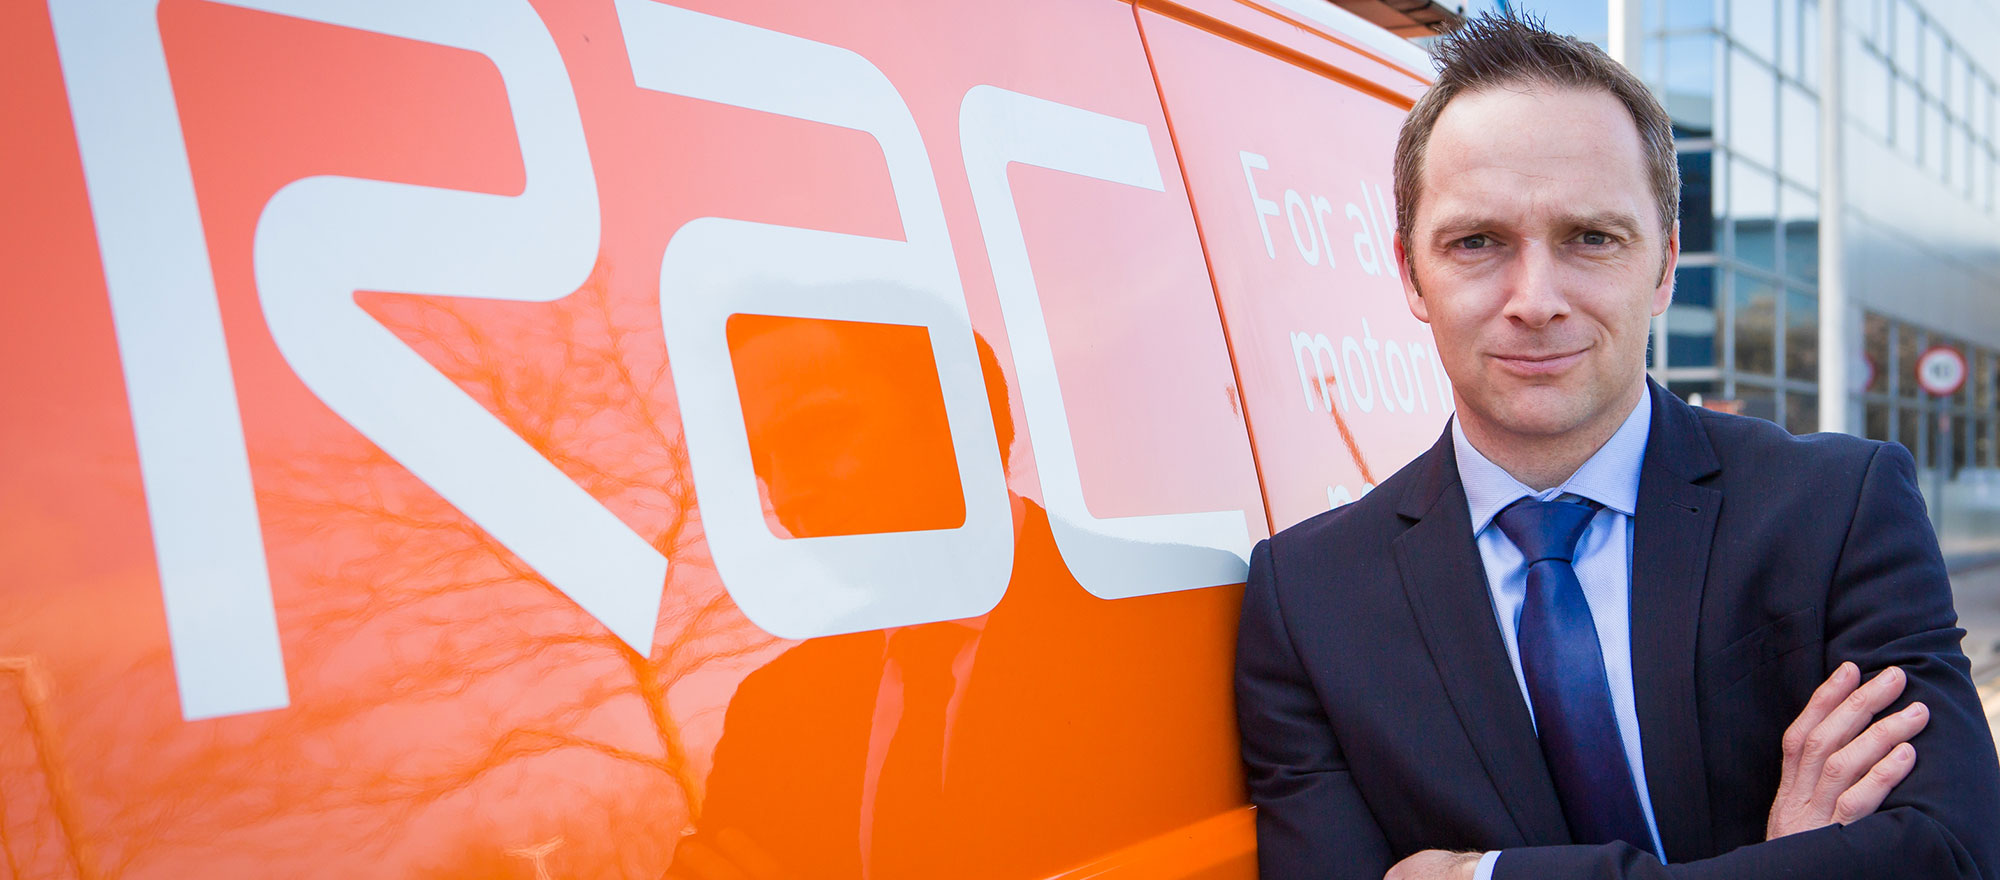 rac-business-launches-new-fixed-price-product